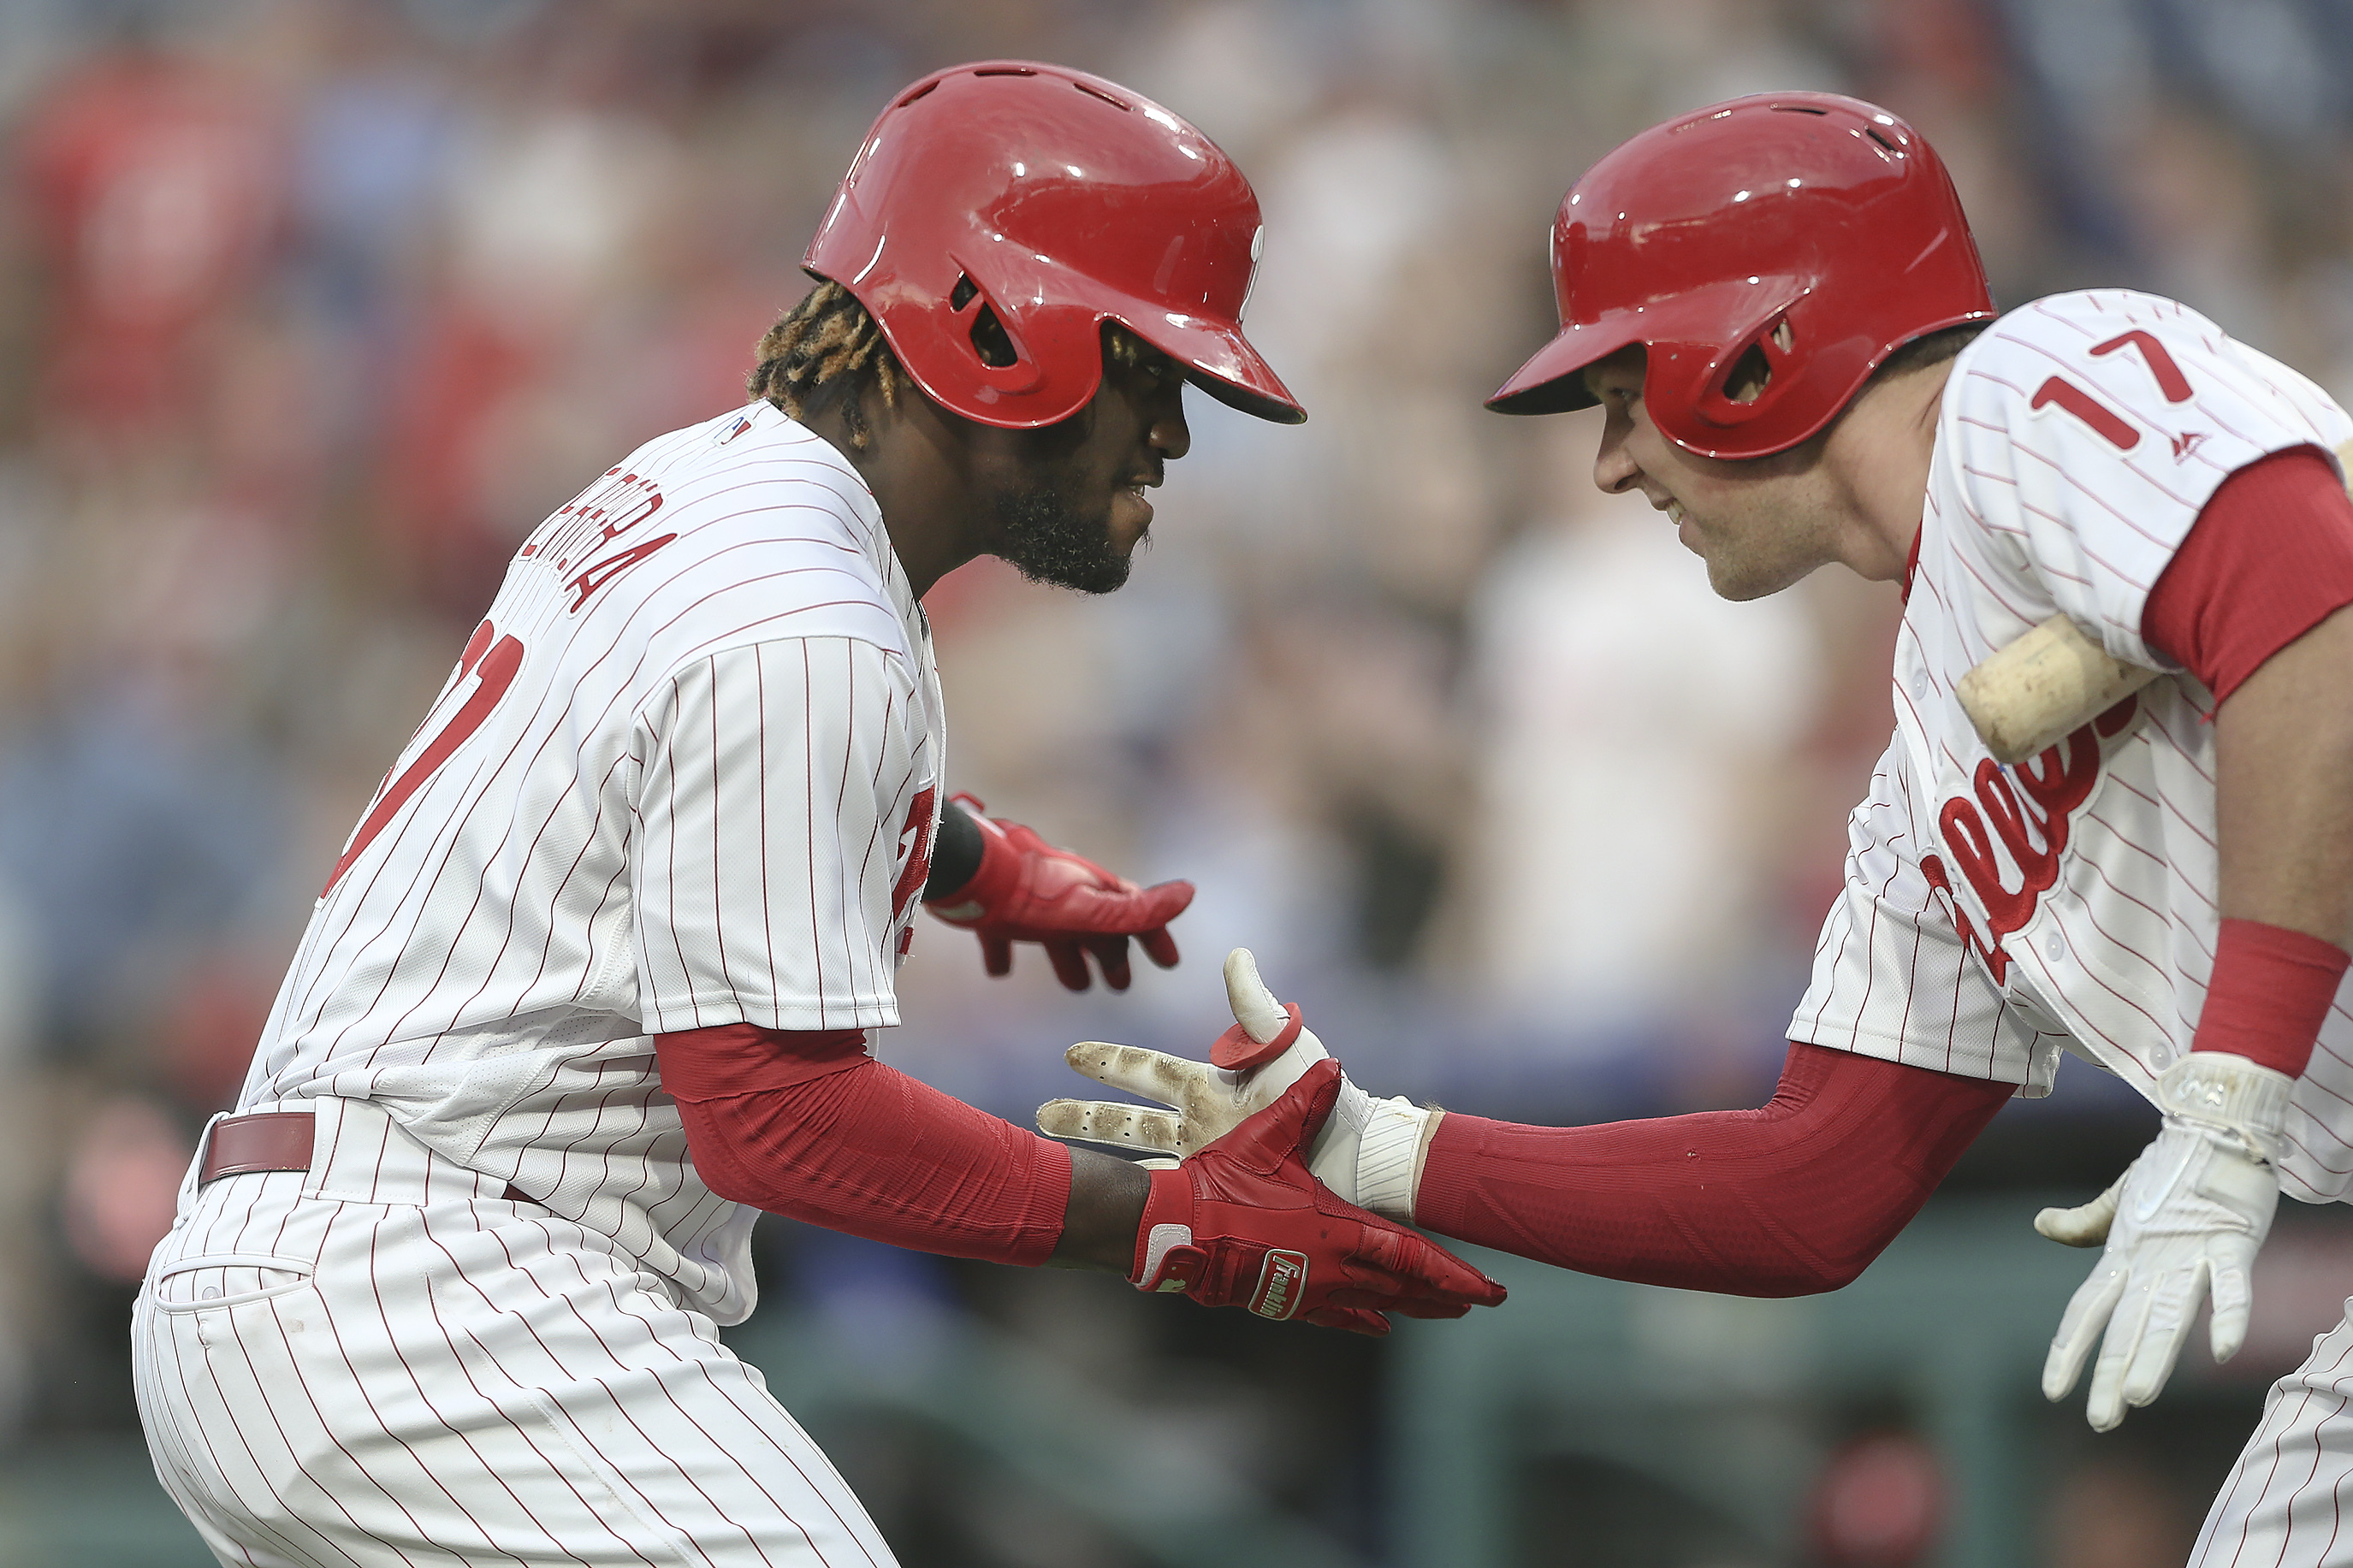 STEVEN M. FALK / Staff PhotographerWhen the All-Star rosters were unveiled Sunday, neither Odubel Herrera (left) nor Rhys Hoskins was on the National League team. But while both Phillies outfielders had their shining moments in the season´s first half, it´s difficult to list either among the All-Star snubs.